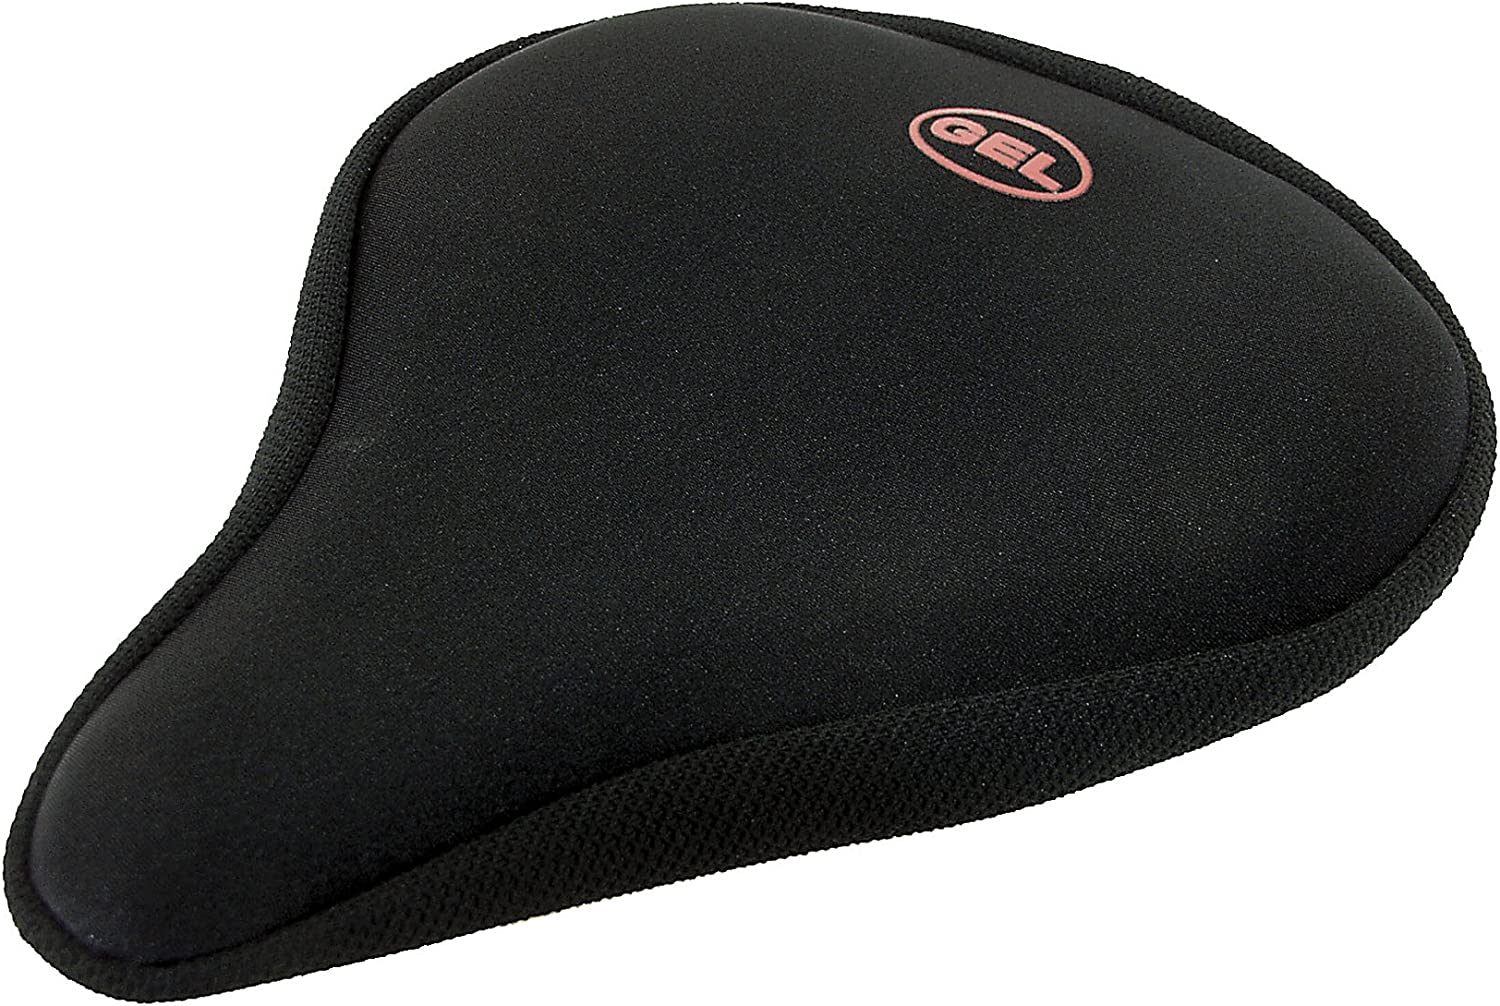 Ventura Slim Gel Tech Seat Cover